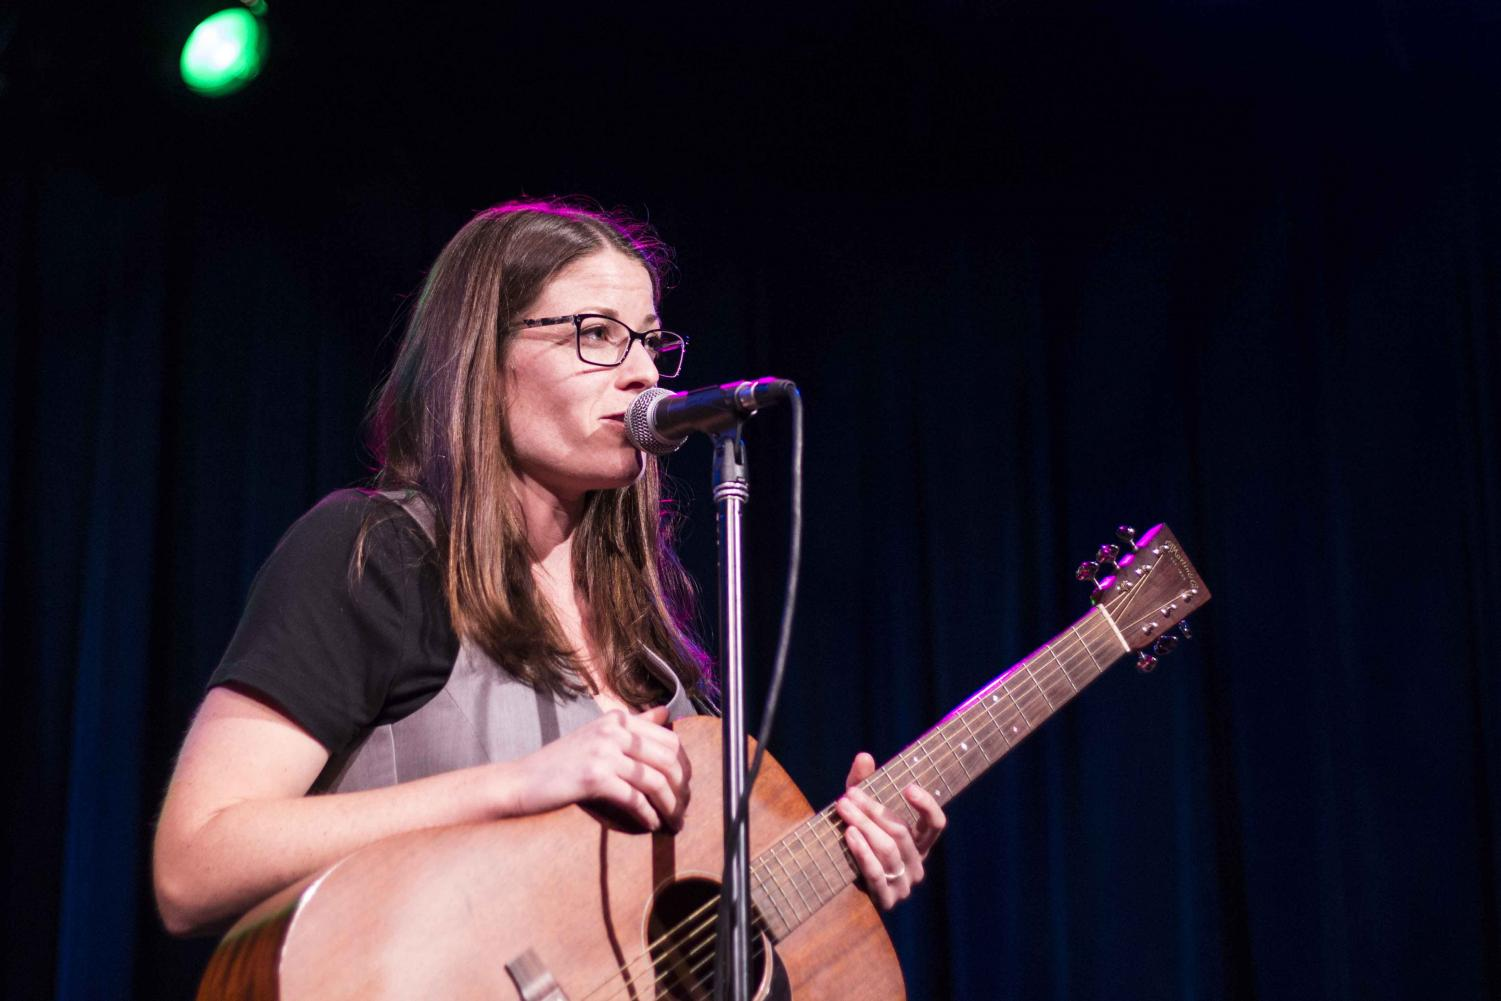 Katie+Barrett+before+performing+her+song+%22Thought+of+You%22+Thursday+evening+at+Sierra+Nevada+Brewing+Co.%27s+Big+Room.+Photo+credit%3A+Brian+Luong